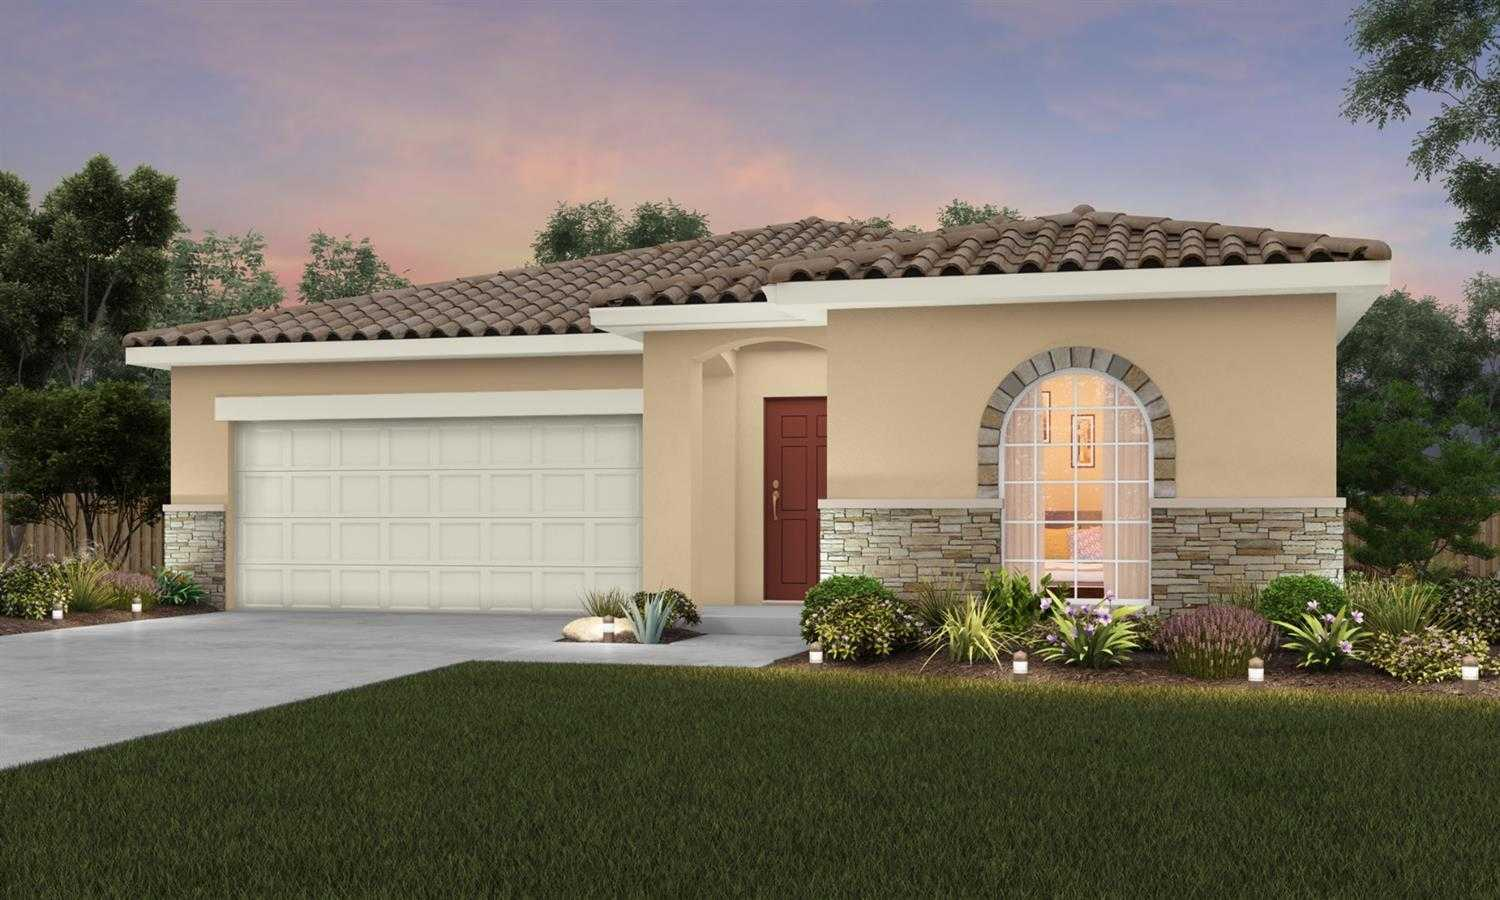 $325,250 - 3Br/2Ba -  for Sale in Merced